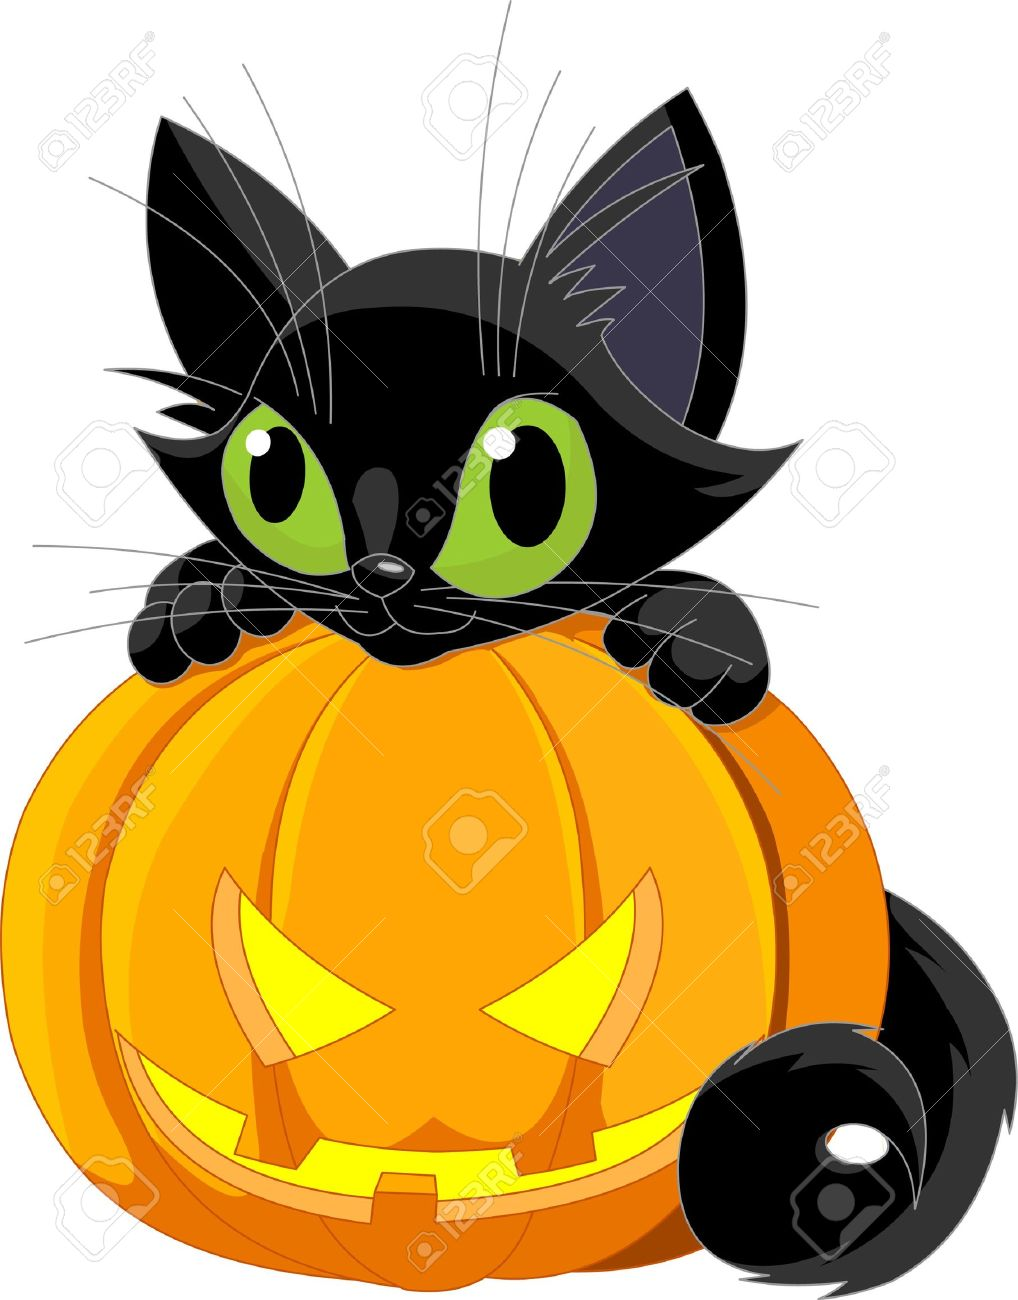 A Cute Black Cat On A Halloween Pumpkin. Royalty Free Cliparts.